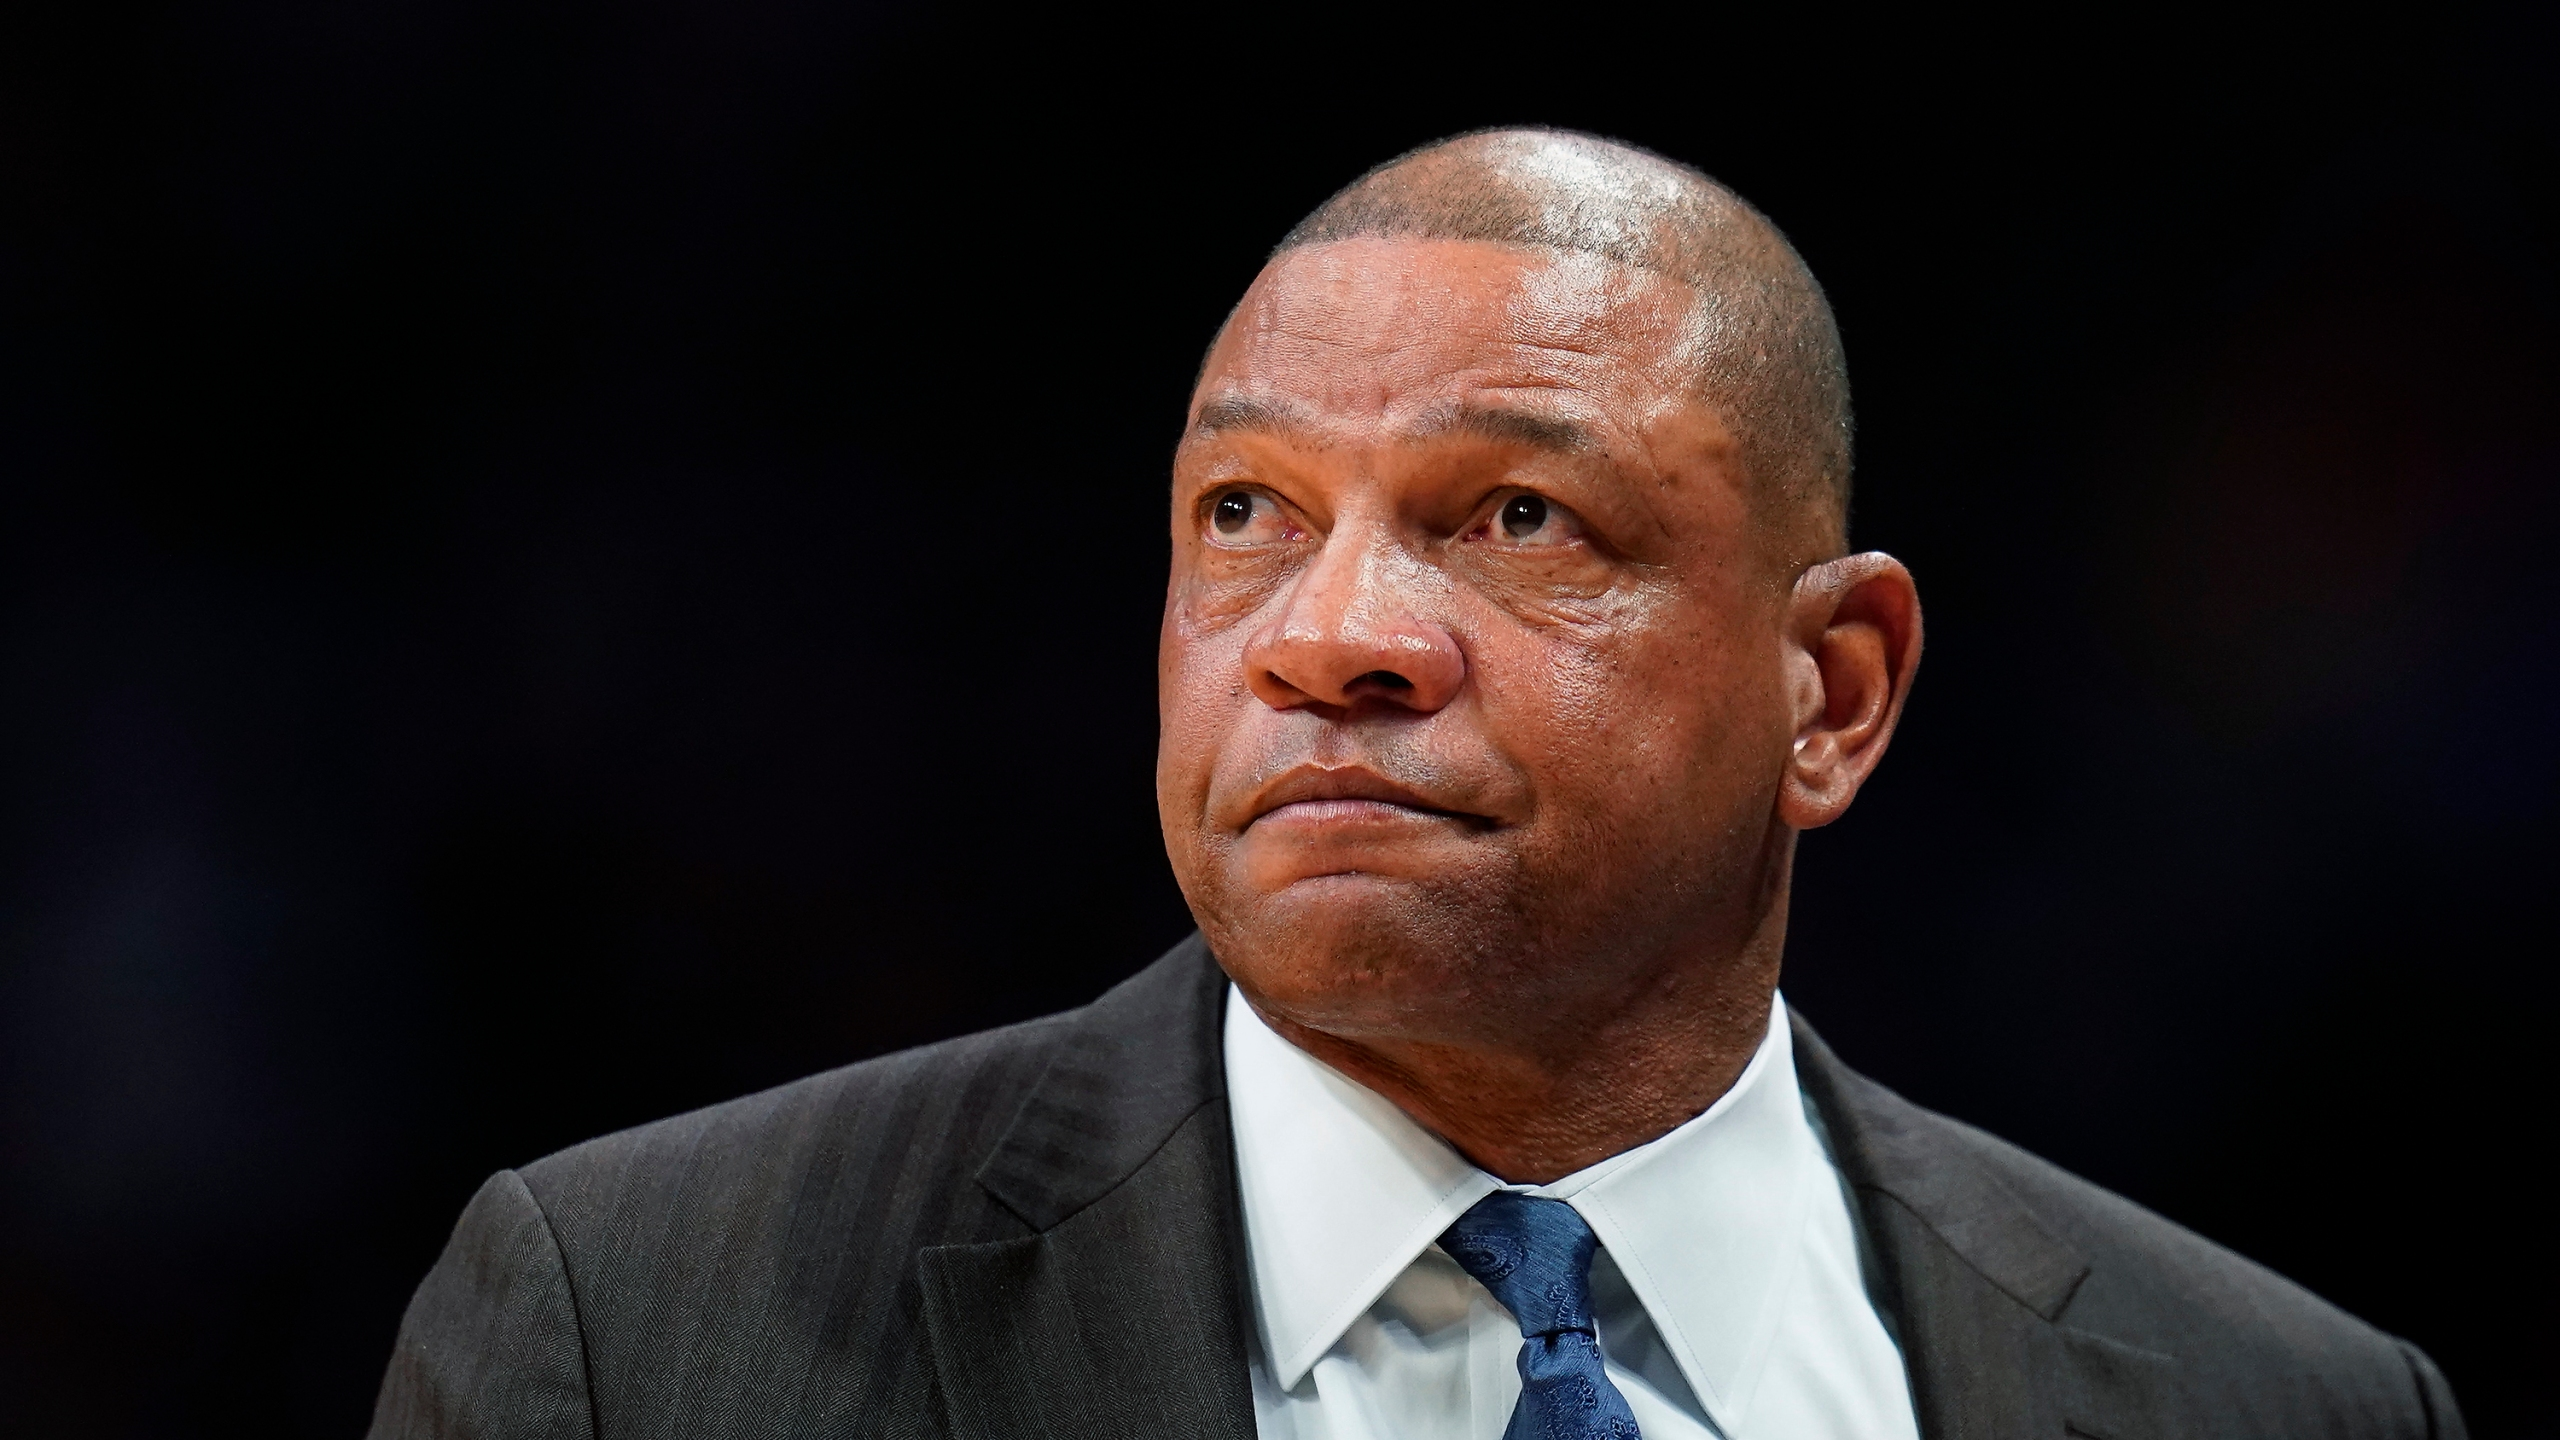 Los Angeles Clippers coach Doc Rivers watches during the team's game against the Denver Nuggets in Denver on Jan. 12, 2020. (Jack Dempsey / Associated Press)